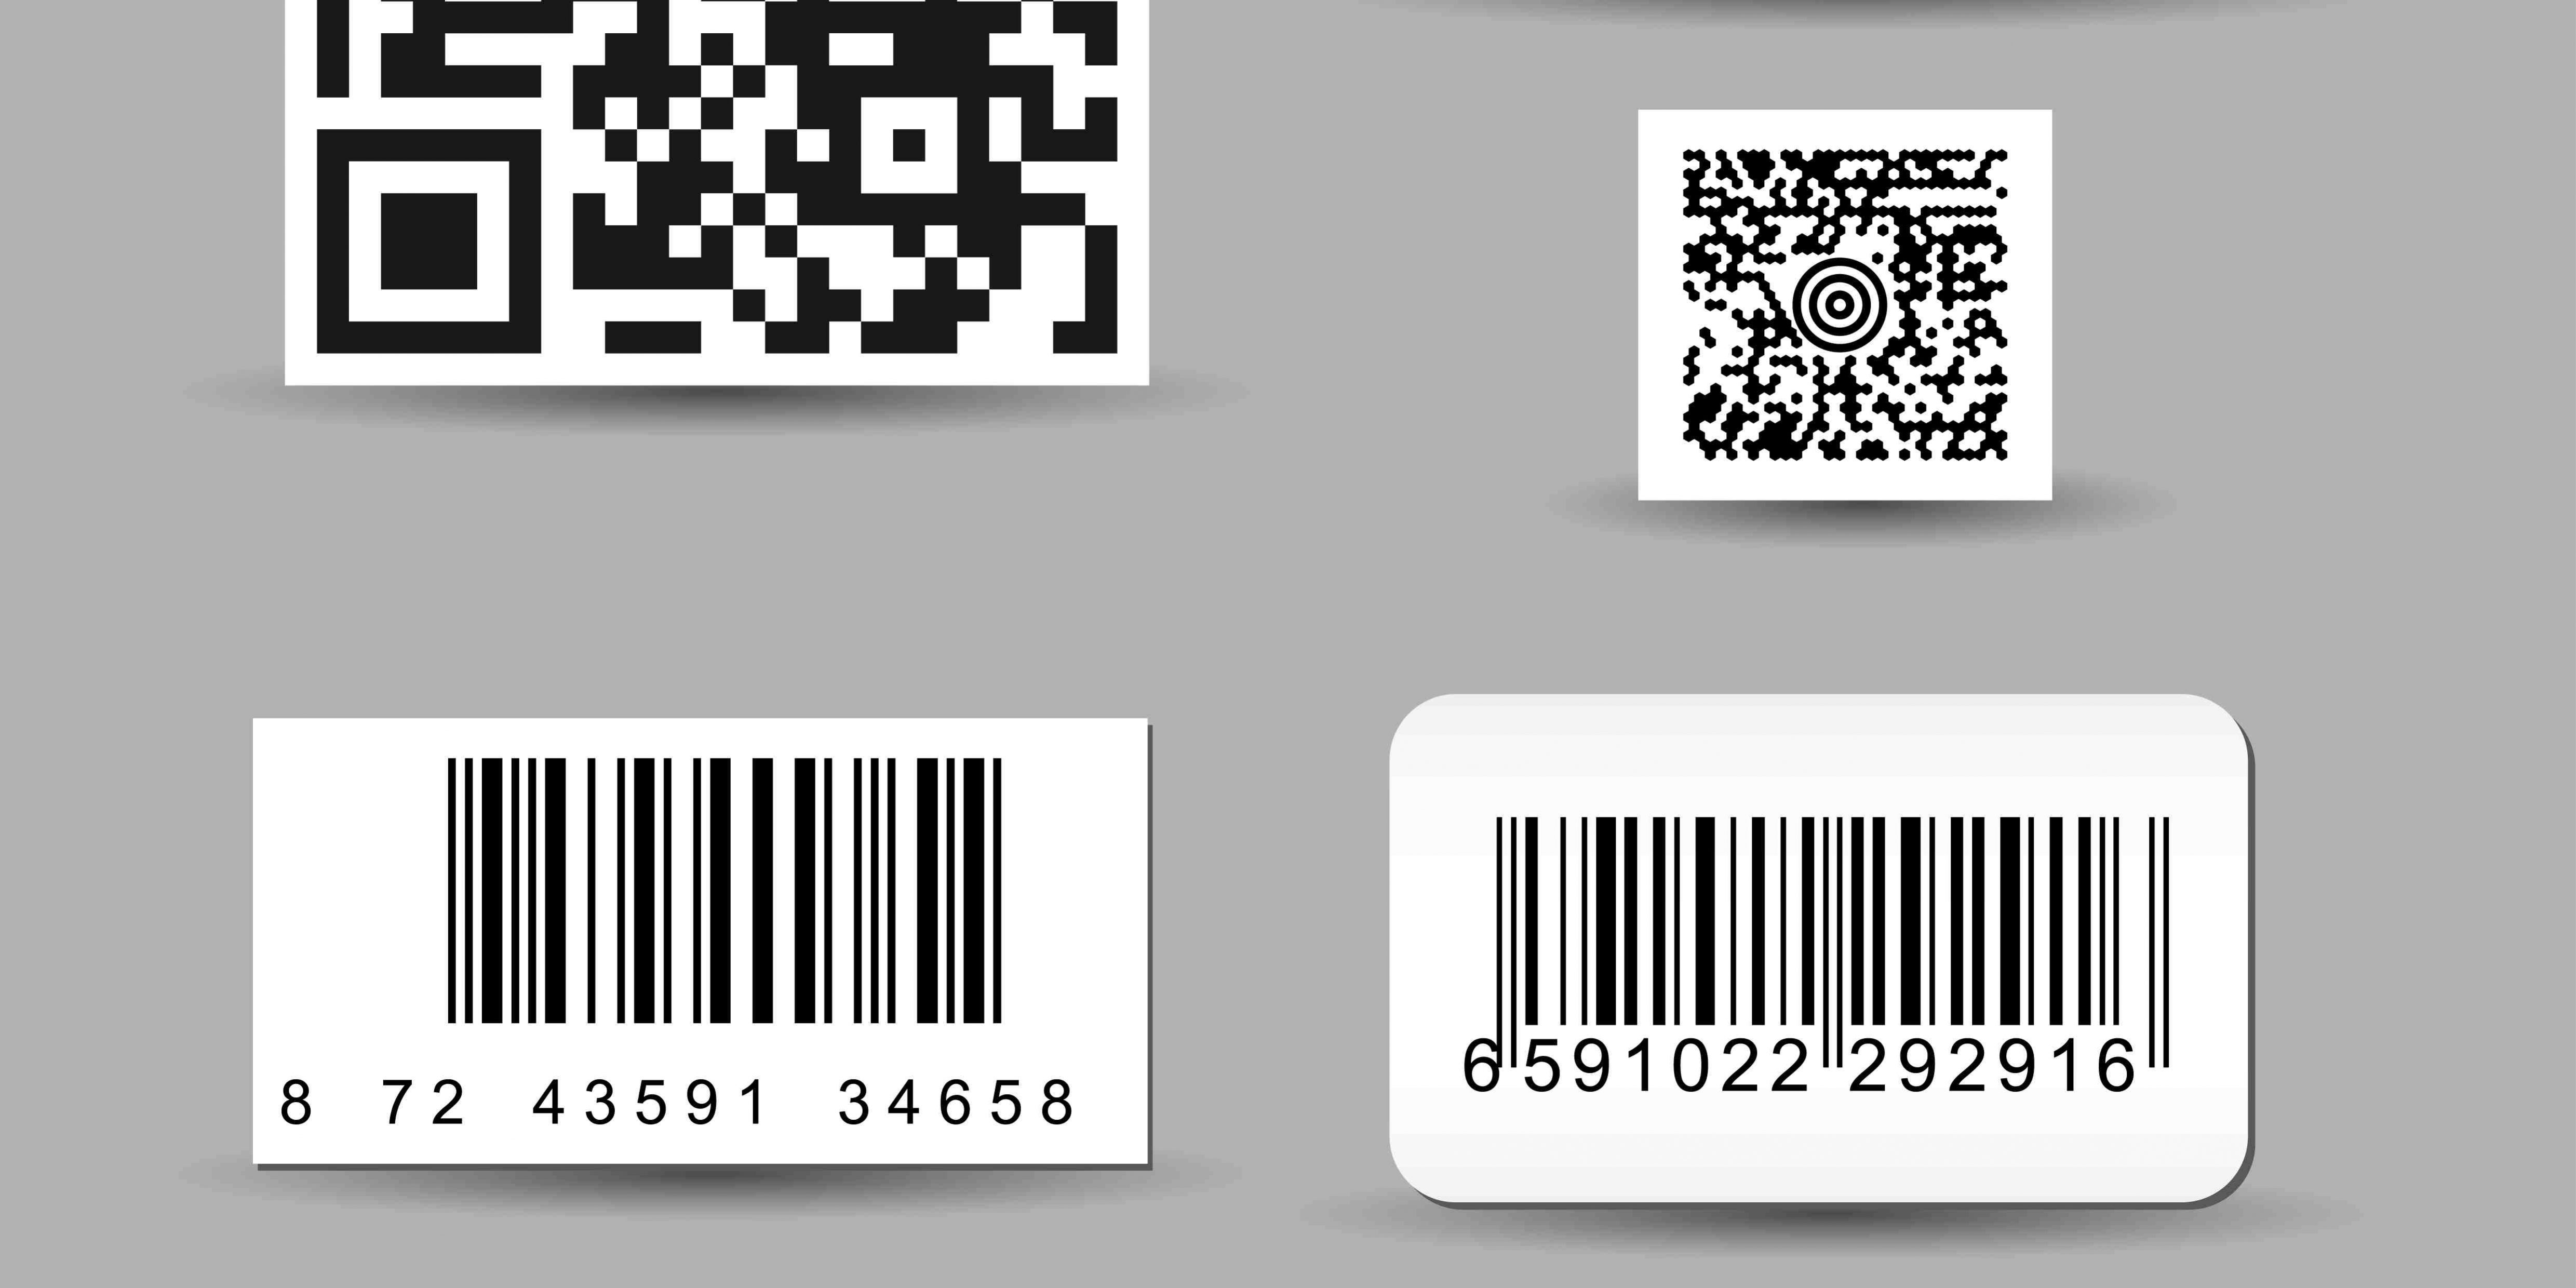 Barcode Types: More than Meets the Eye